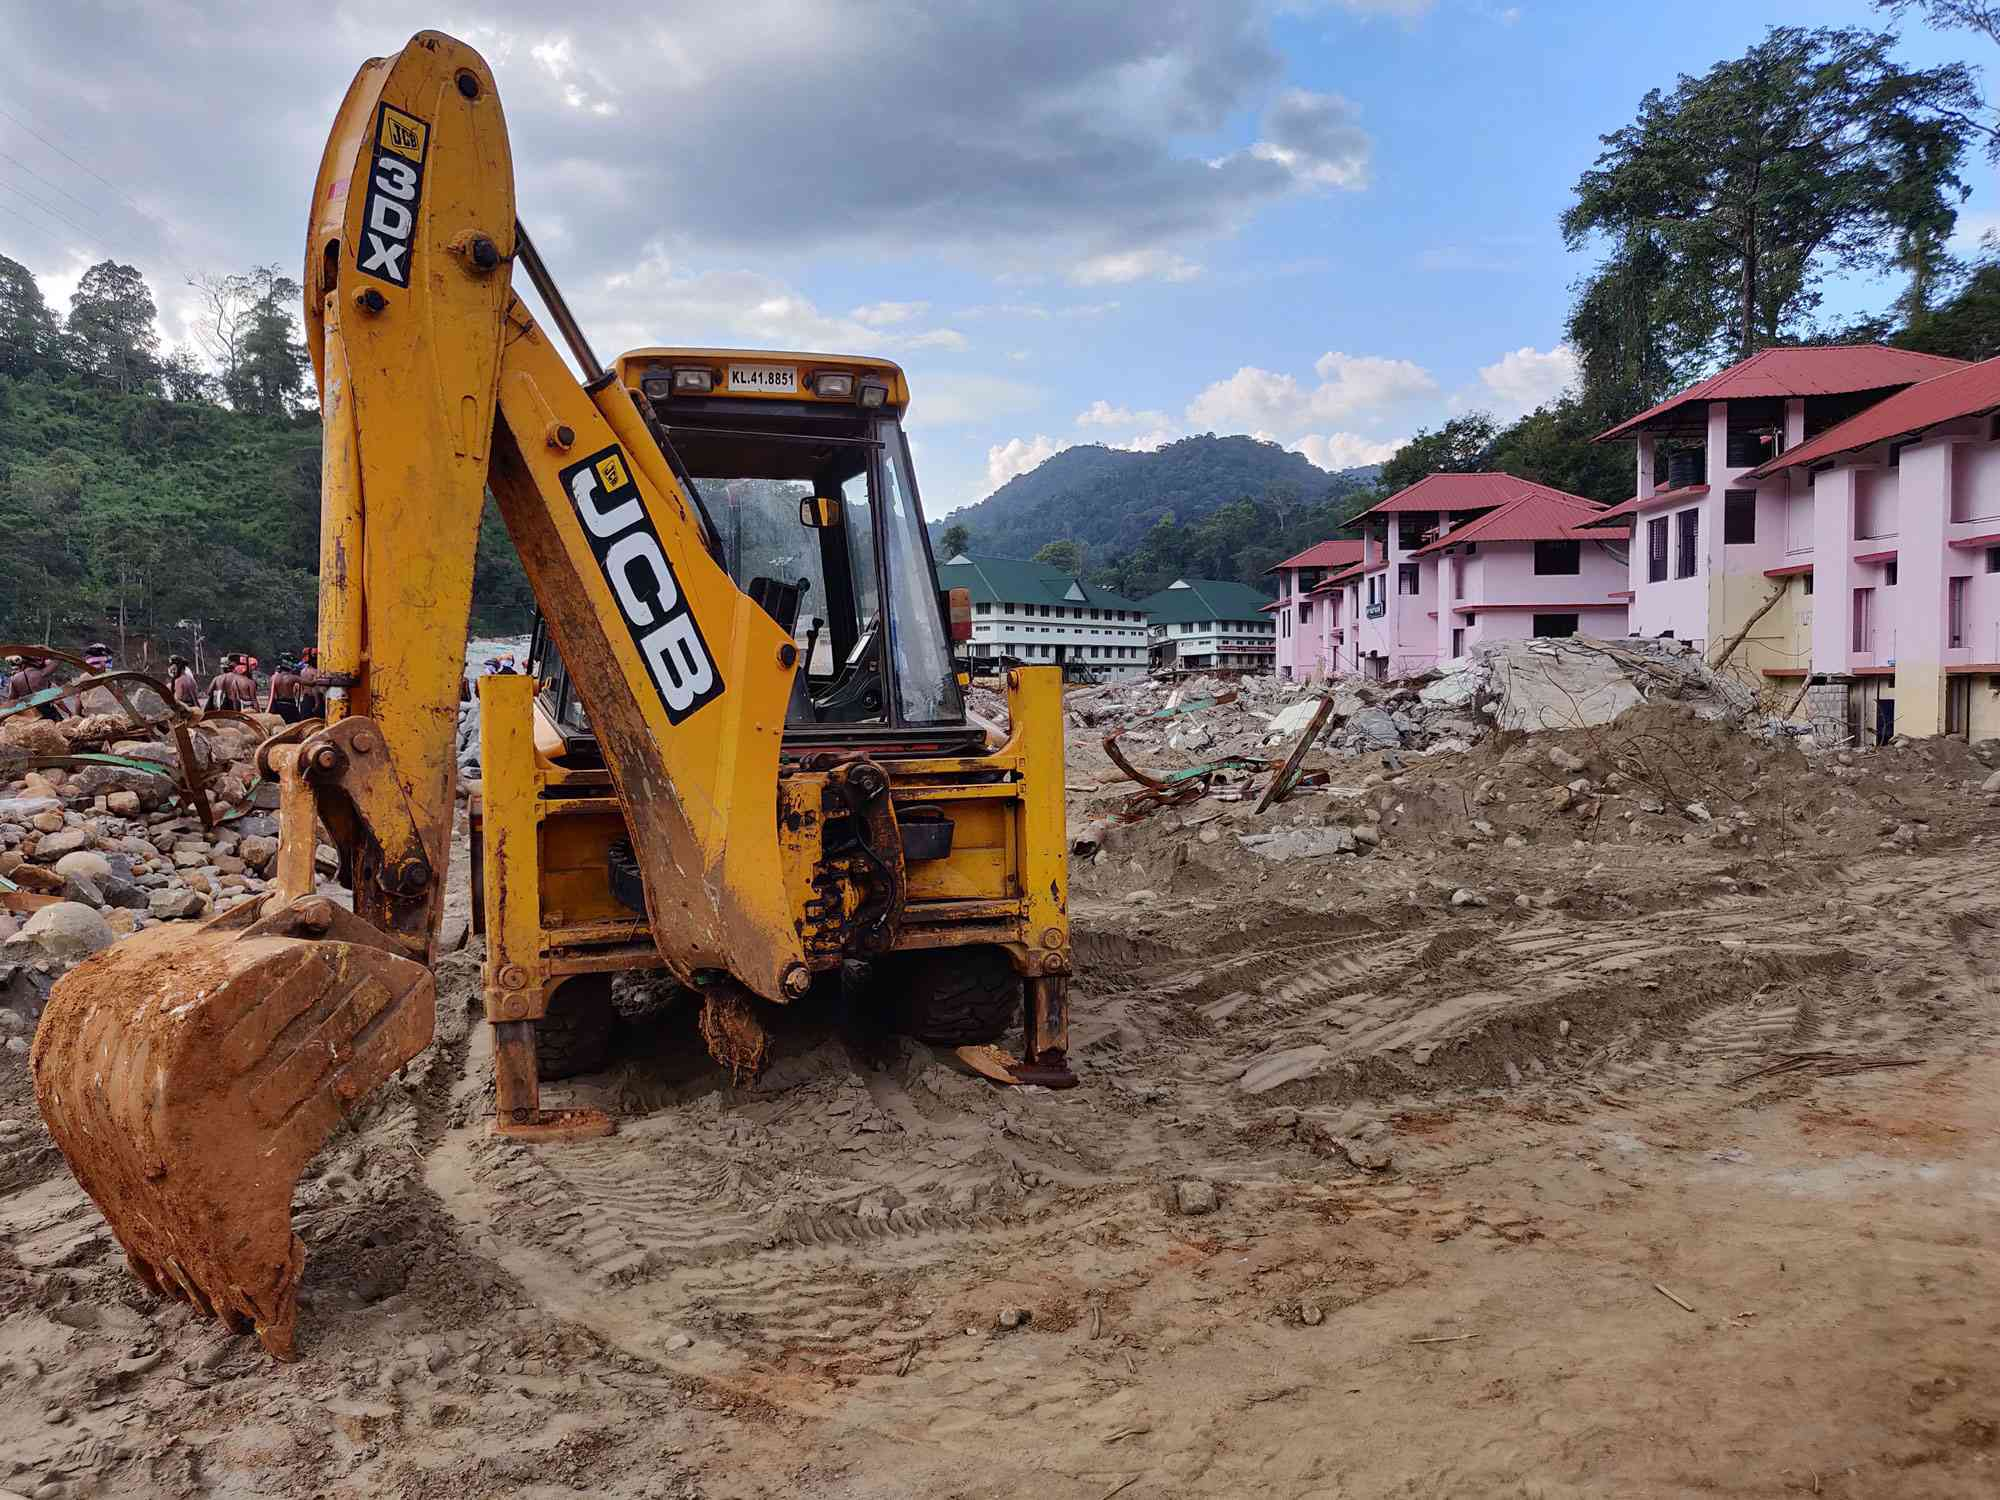 Three months after the floods, debris is still being cleared from the river bank. Photo credit: TA Ameerudheen